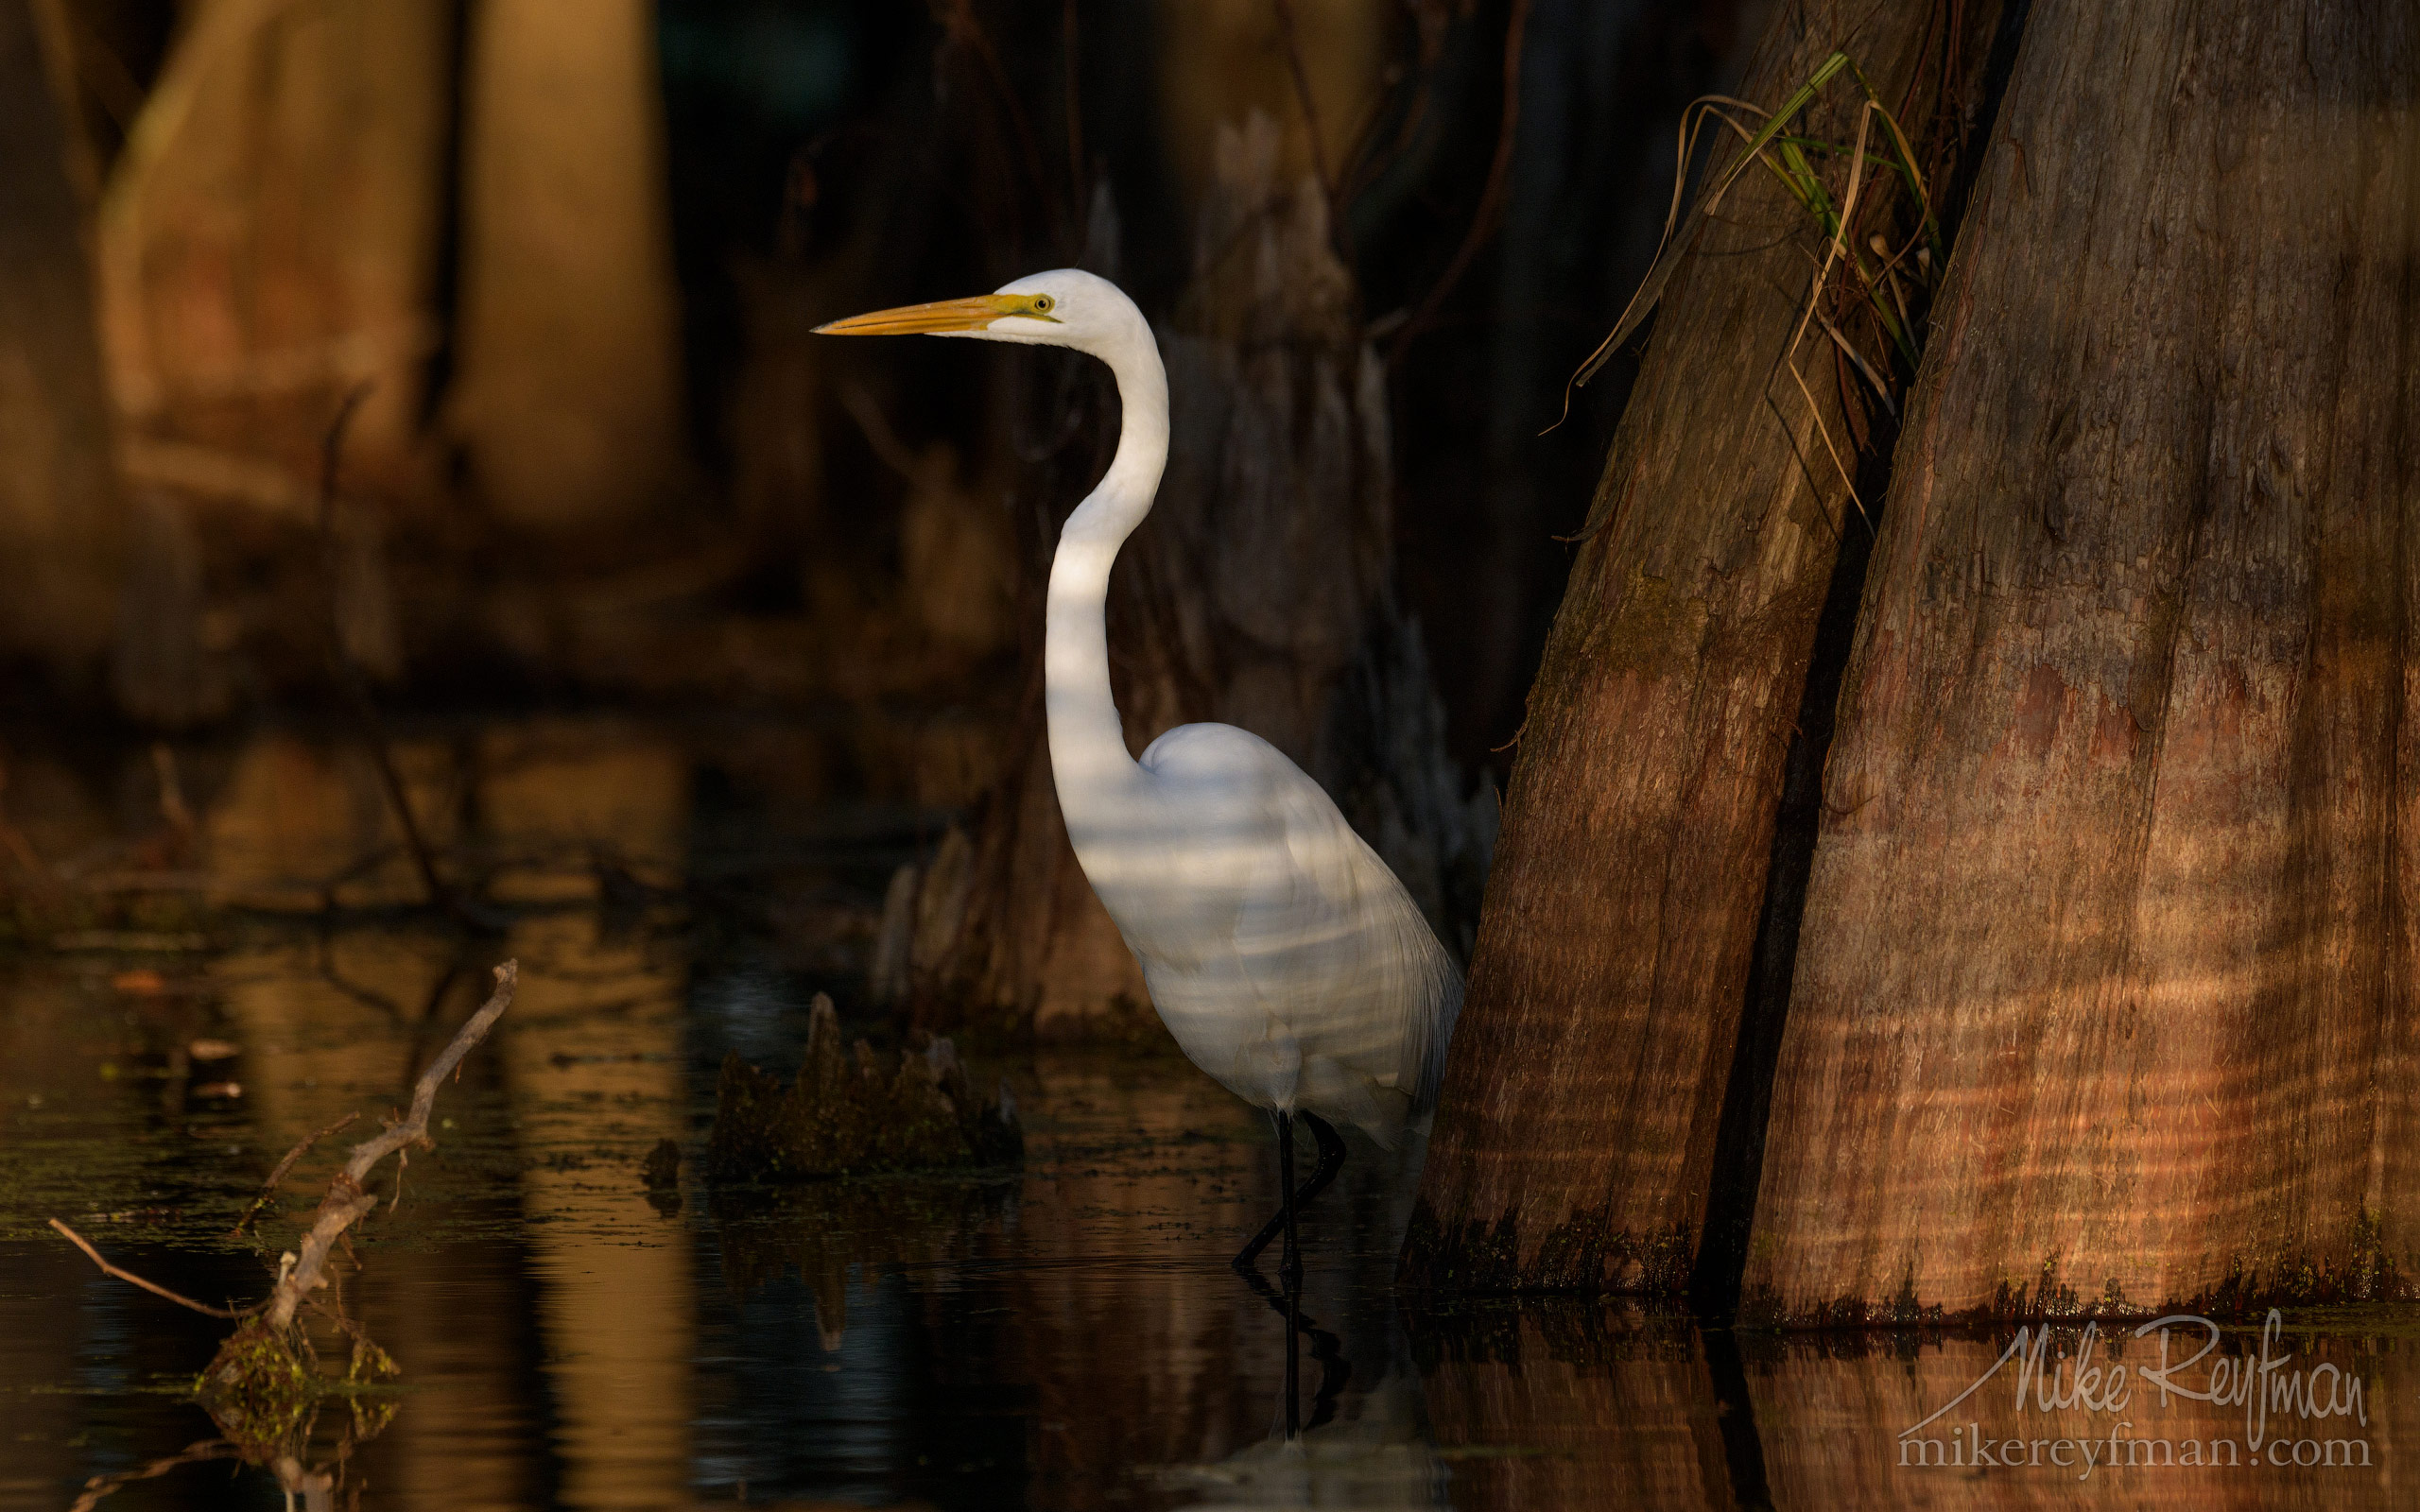 Great Egret with the buttressed trunks of Bald Cypress and Tupelo trees in the background. Lake Martin, Louisiana, US 069-LT1-50A4085.jpg - Bold Cypress and Tupelo Trees in the swamps of Atchafalaya River Basin. Caddo, Martin and Fousse Lakes. Texas/Louisiana, USA. - Mike Reyfman Photography